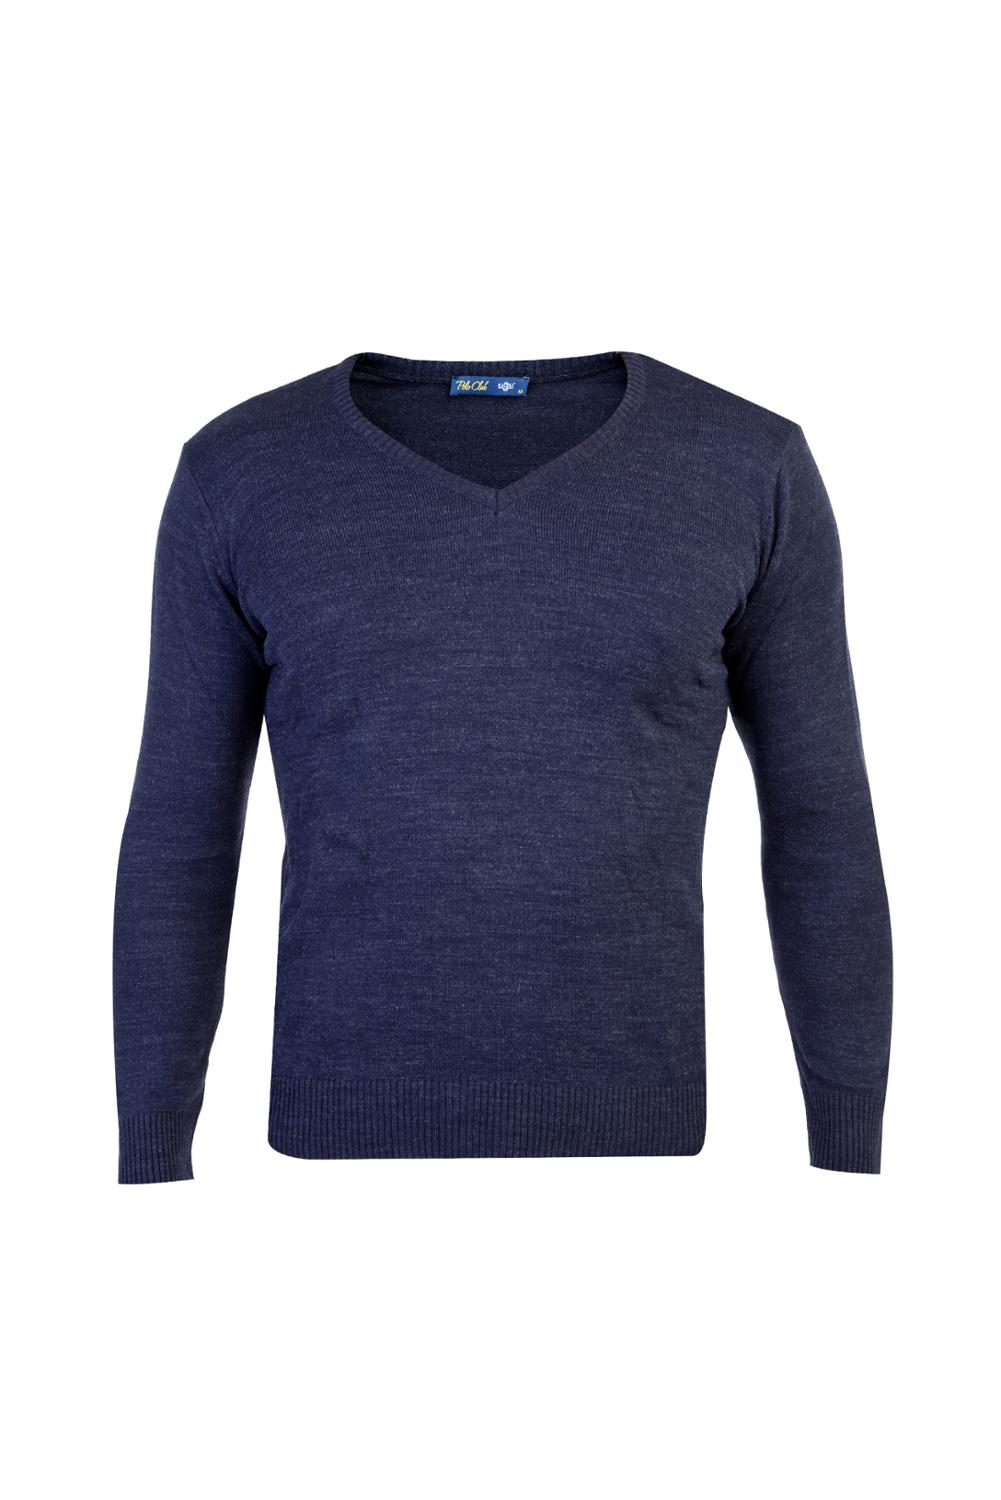 Kigili V-Neck Pullovers Long Sleeve Sweaters V Neck Pullovers Men Autumn Winter High Quality 100% Acrylic Solid Outwear Fit Knitting Clothing